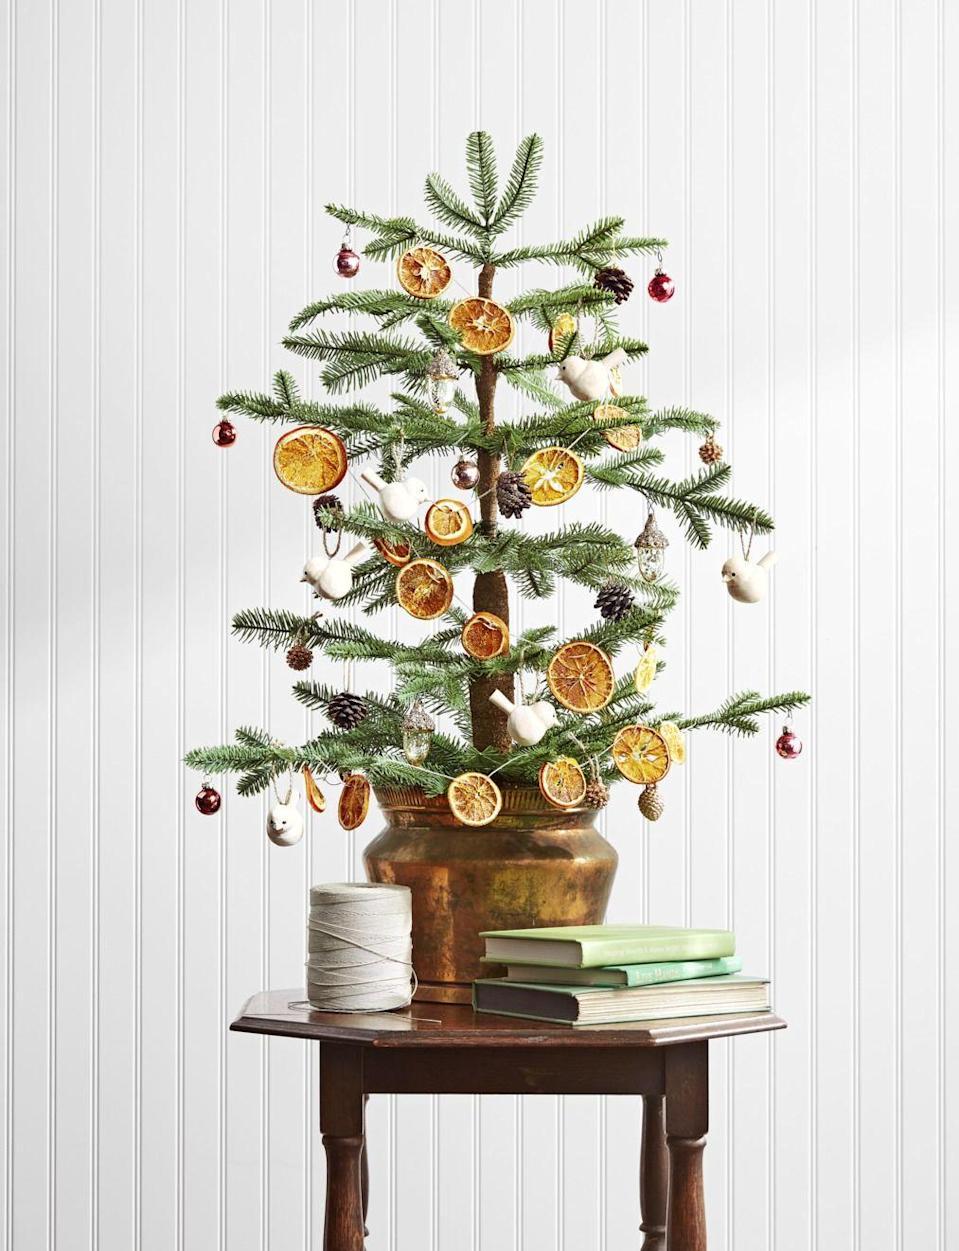 """<p>Have a side table that needs some <em>sprucing</em> up? A sparse alpine balsam fir placed in an antique copper pot adds a vintage touch to a living room or entryway. Use bird and pine cone ornaments and dried-orange garland to hit an organic note. </p><p><a class=""""link rapid-noclick-resp"""" href=""""https://www.amazon.com/National-Tree-Majestic-Christmas-MJ3-24BGLO-1/dp/B00ED79PDY/?tag=syn-yahoo-20&ascsubtag=%5Bartid%7C10050.g.1247%5Bsrc%7Cyahoo-us"""" rel=""""nofollow noopener"""" target=""""_blank"""" data-ylk=""""slk:shop mini christmas trees"""">shop mini christmas trees</a></p>"""